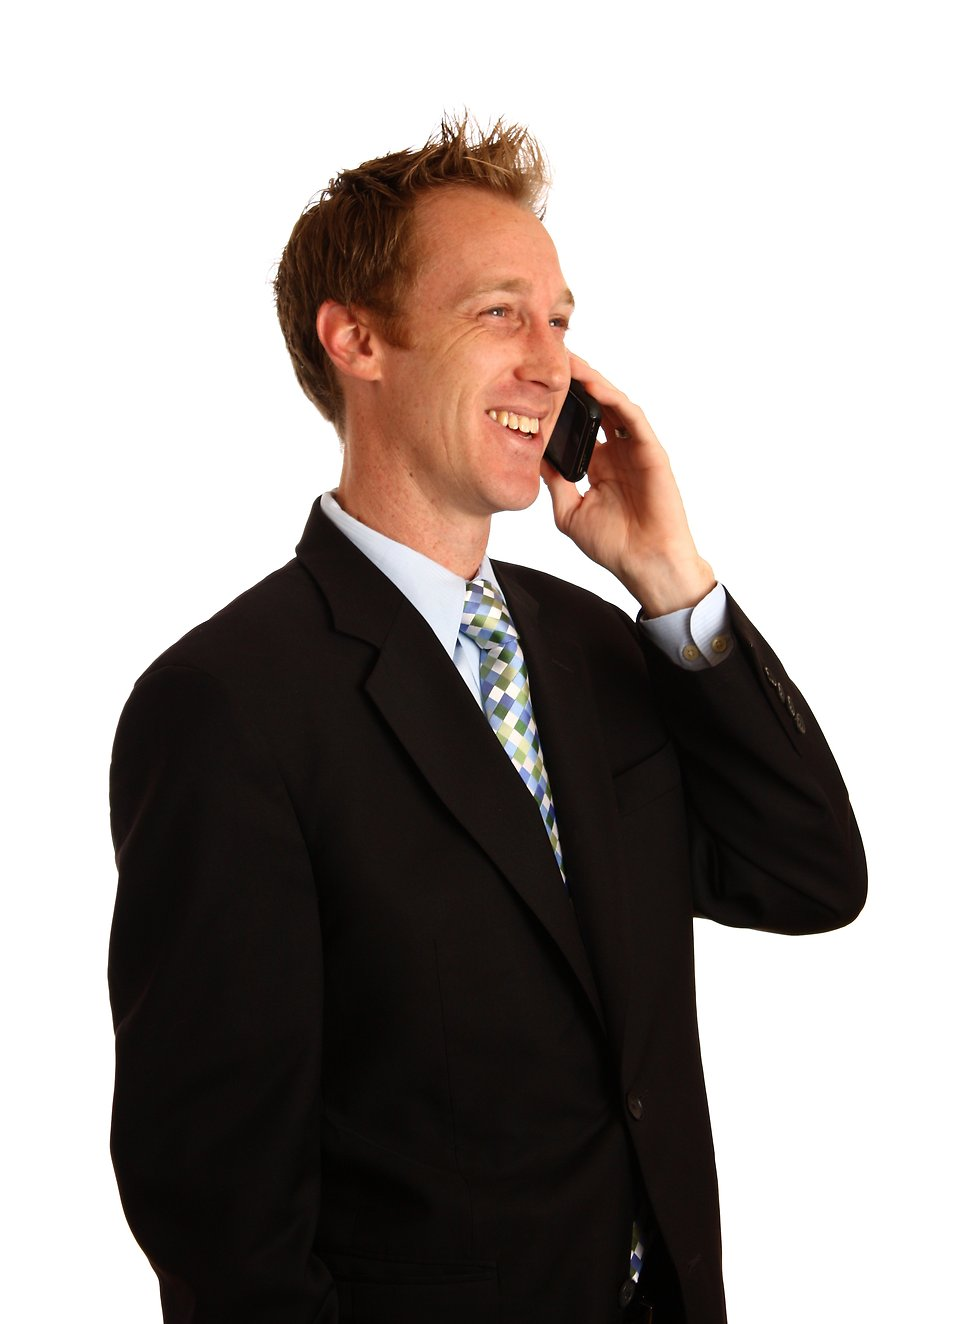 Cell Phone Businessman | Free Stock Photo | A young ...